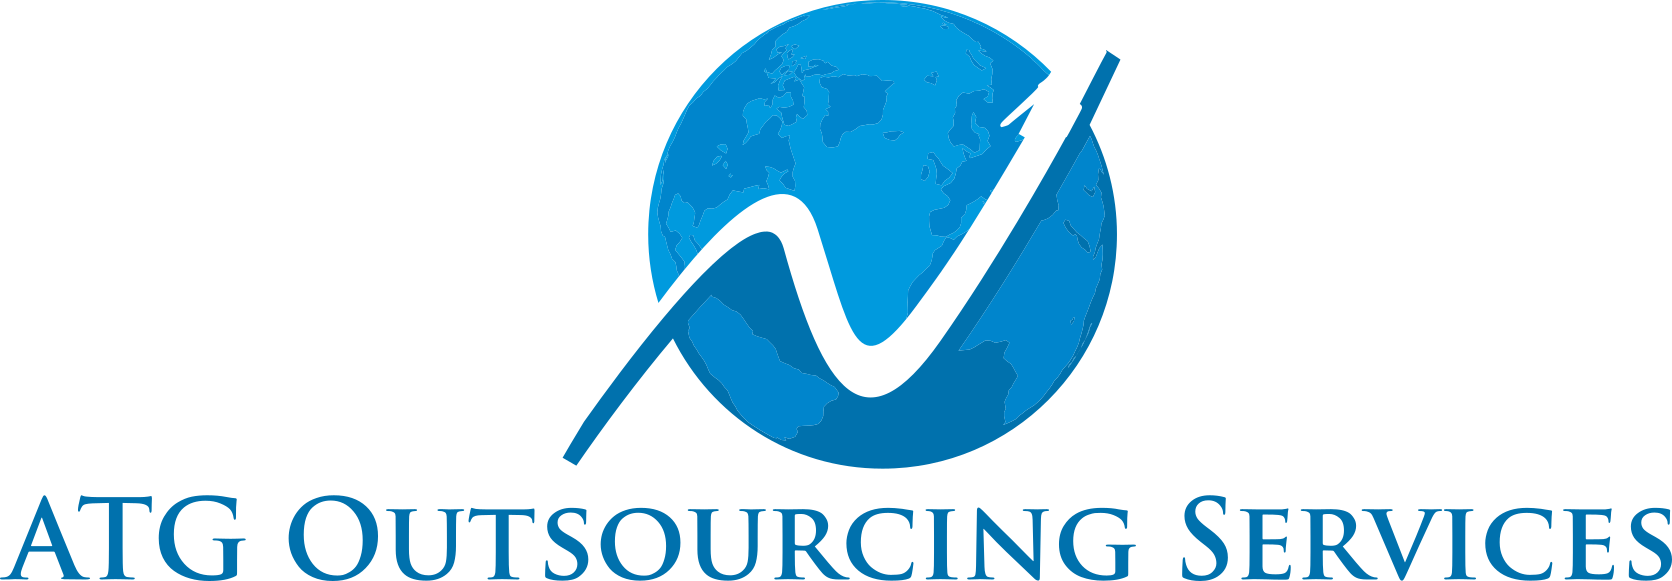 ATG-Outsourcing-Services-PNG